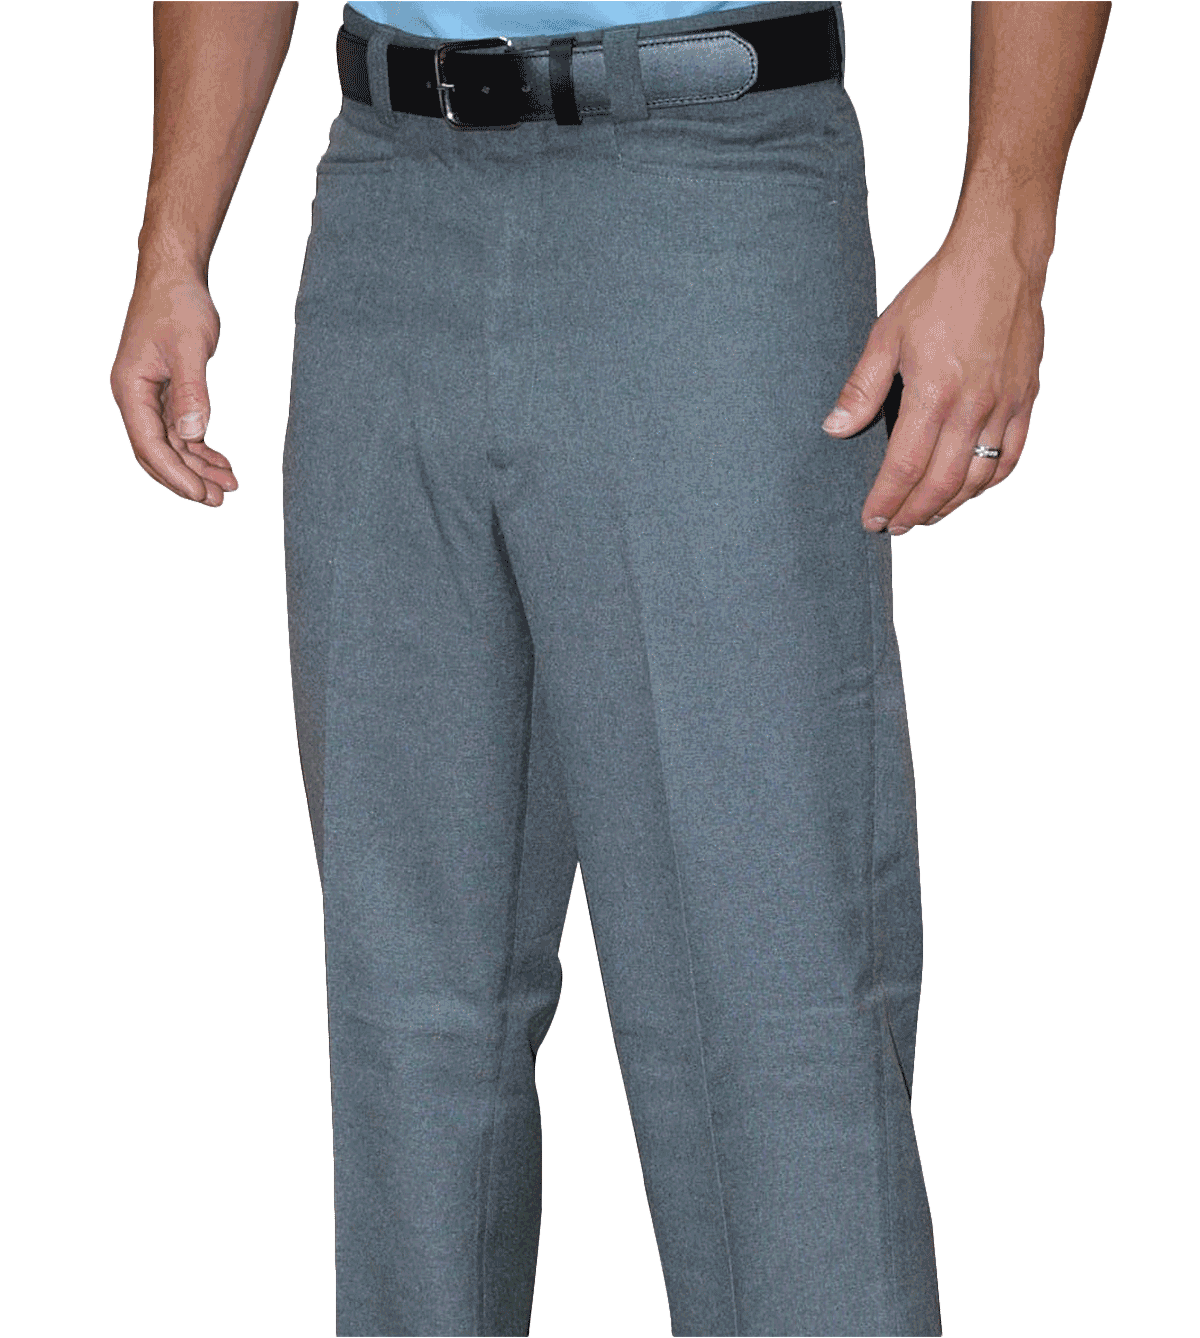 SMITTY Flat Front Plate Pant